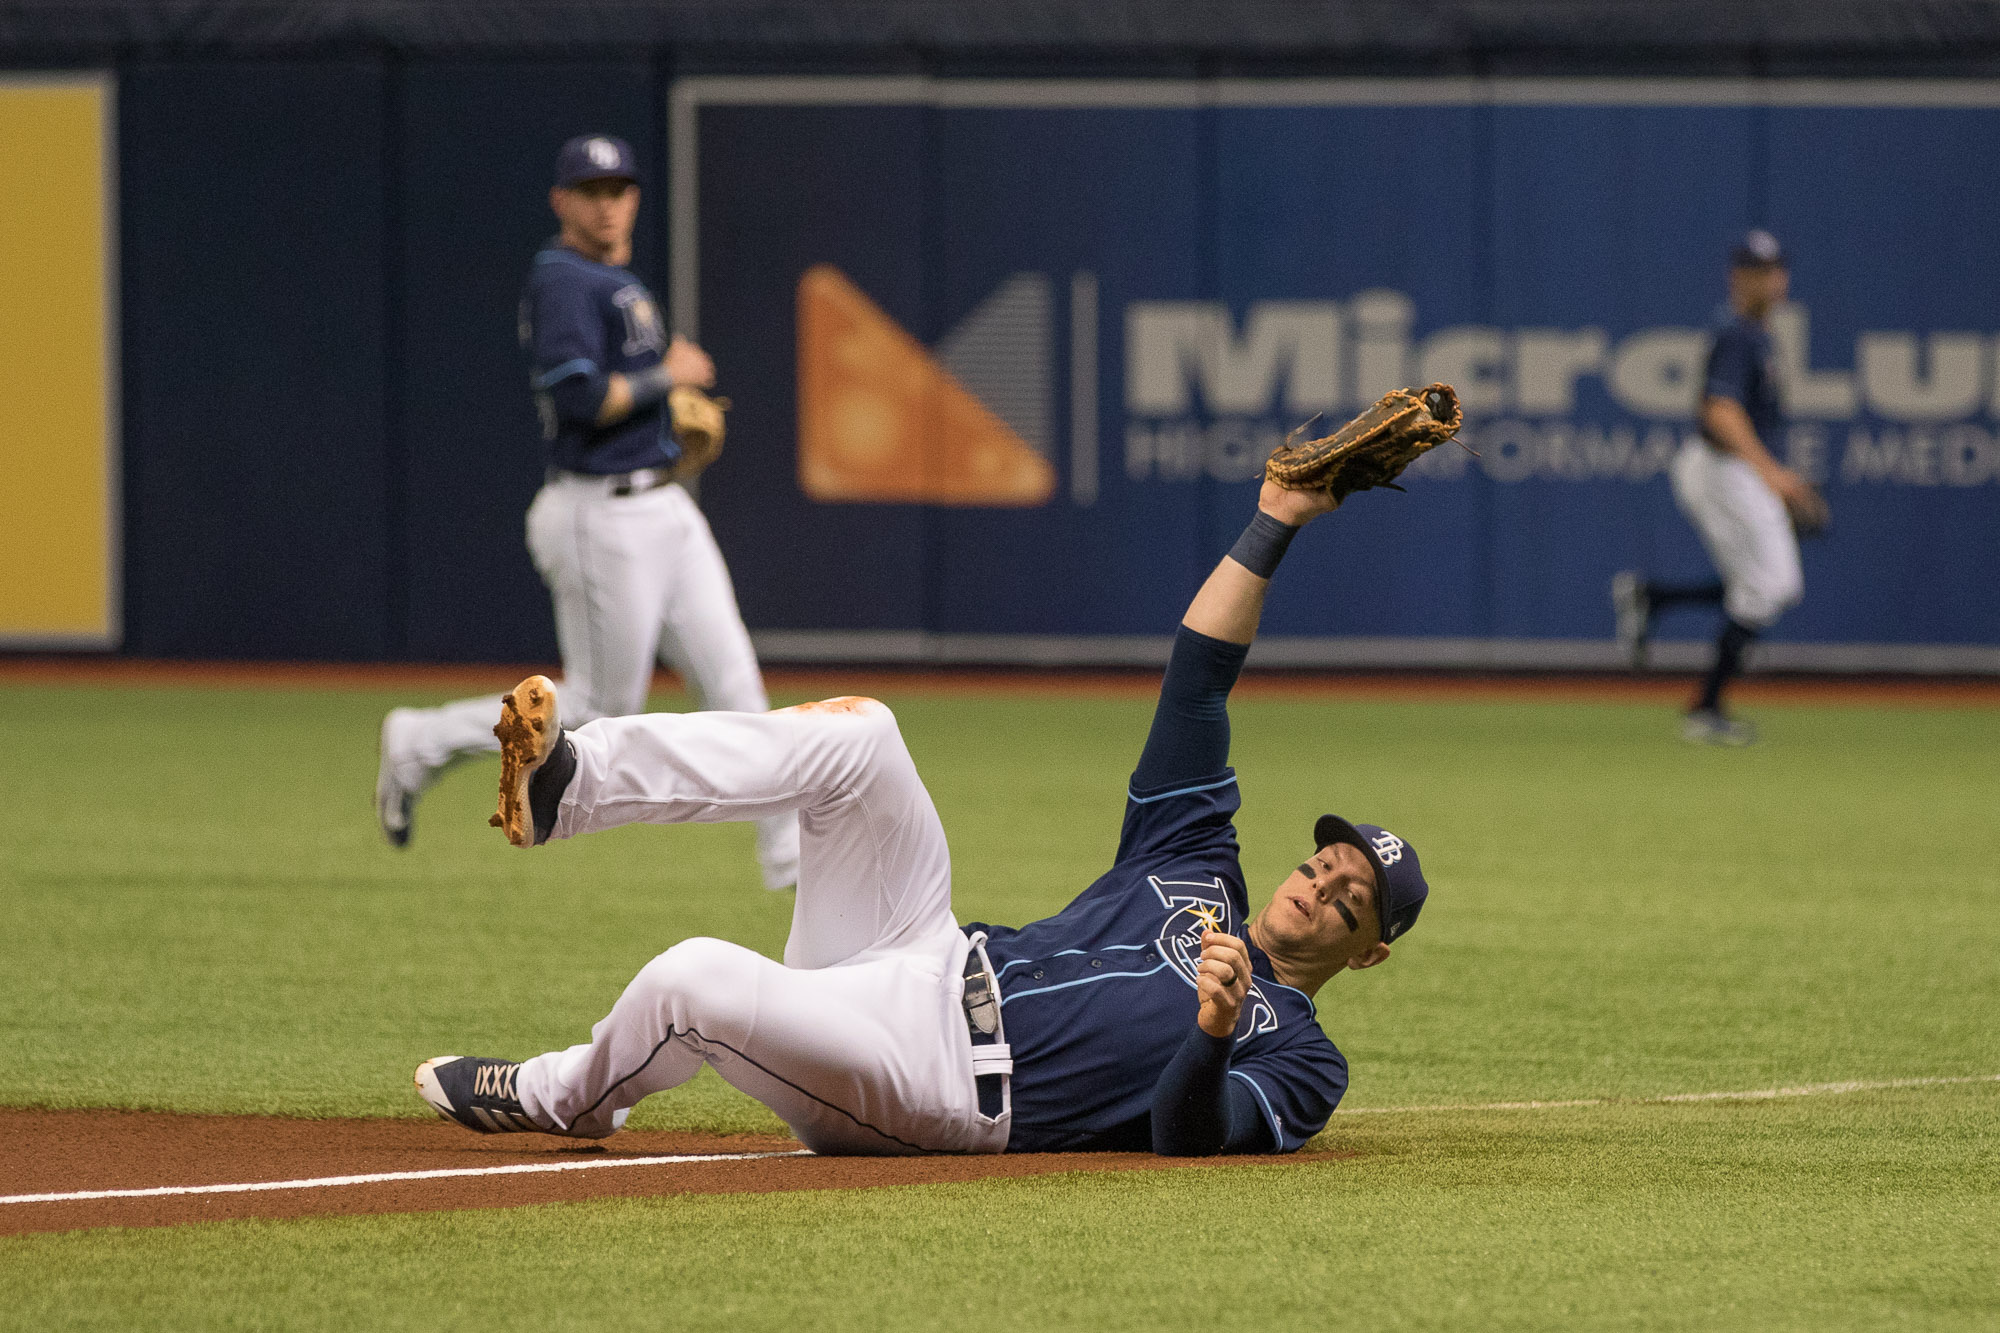 Logan Morrison makes a sliding catch to get an out./STEVEN MUNCIE